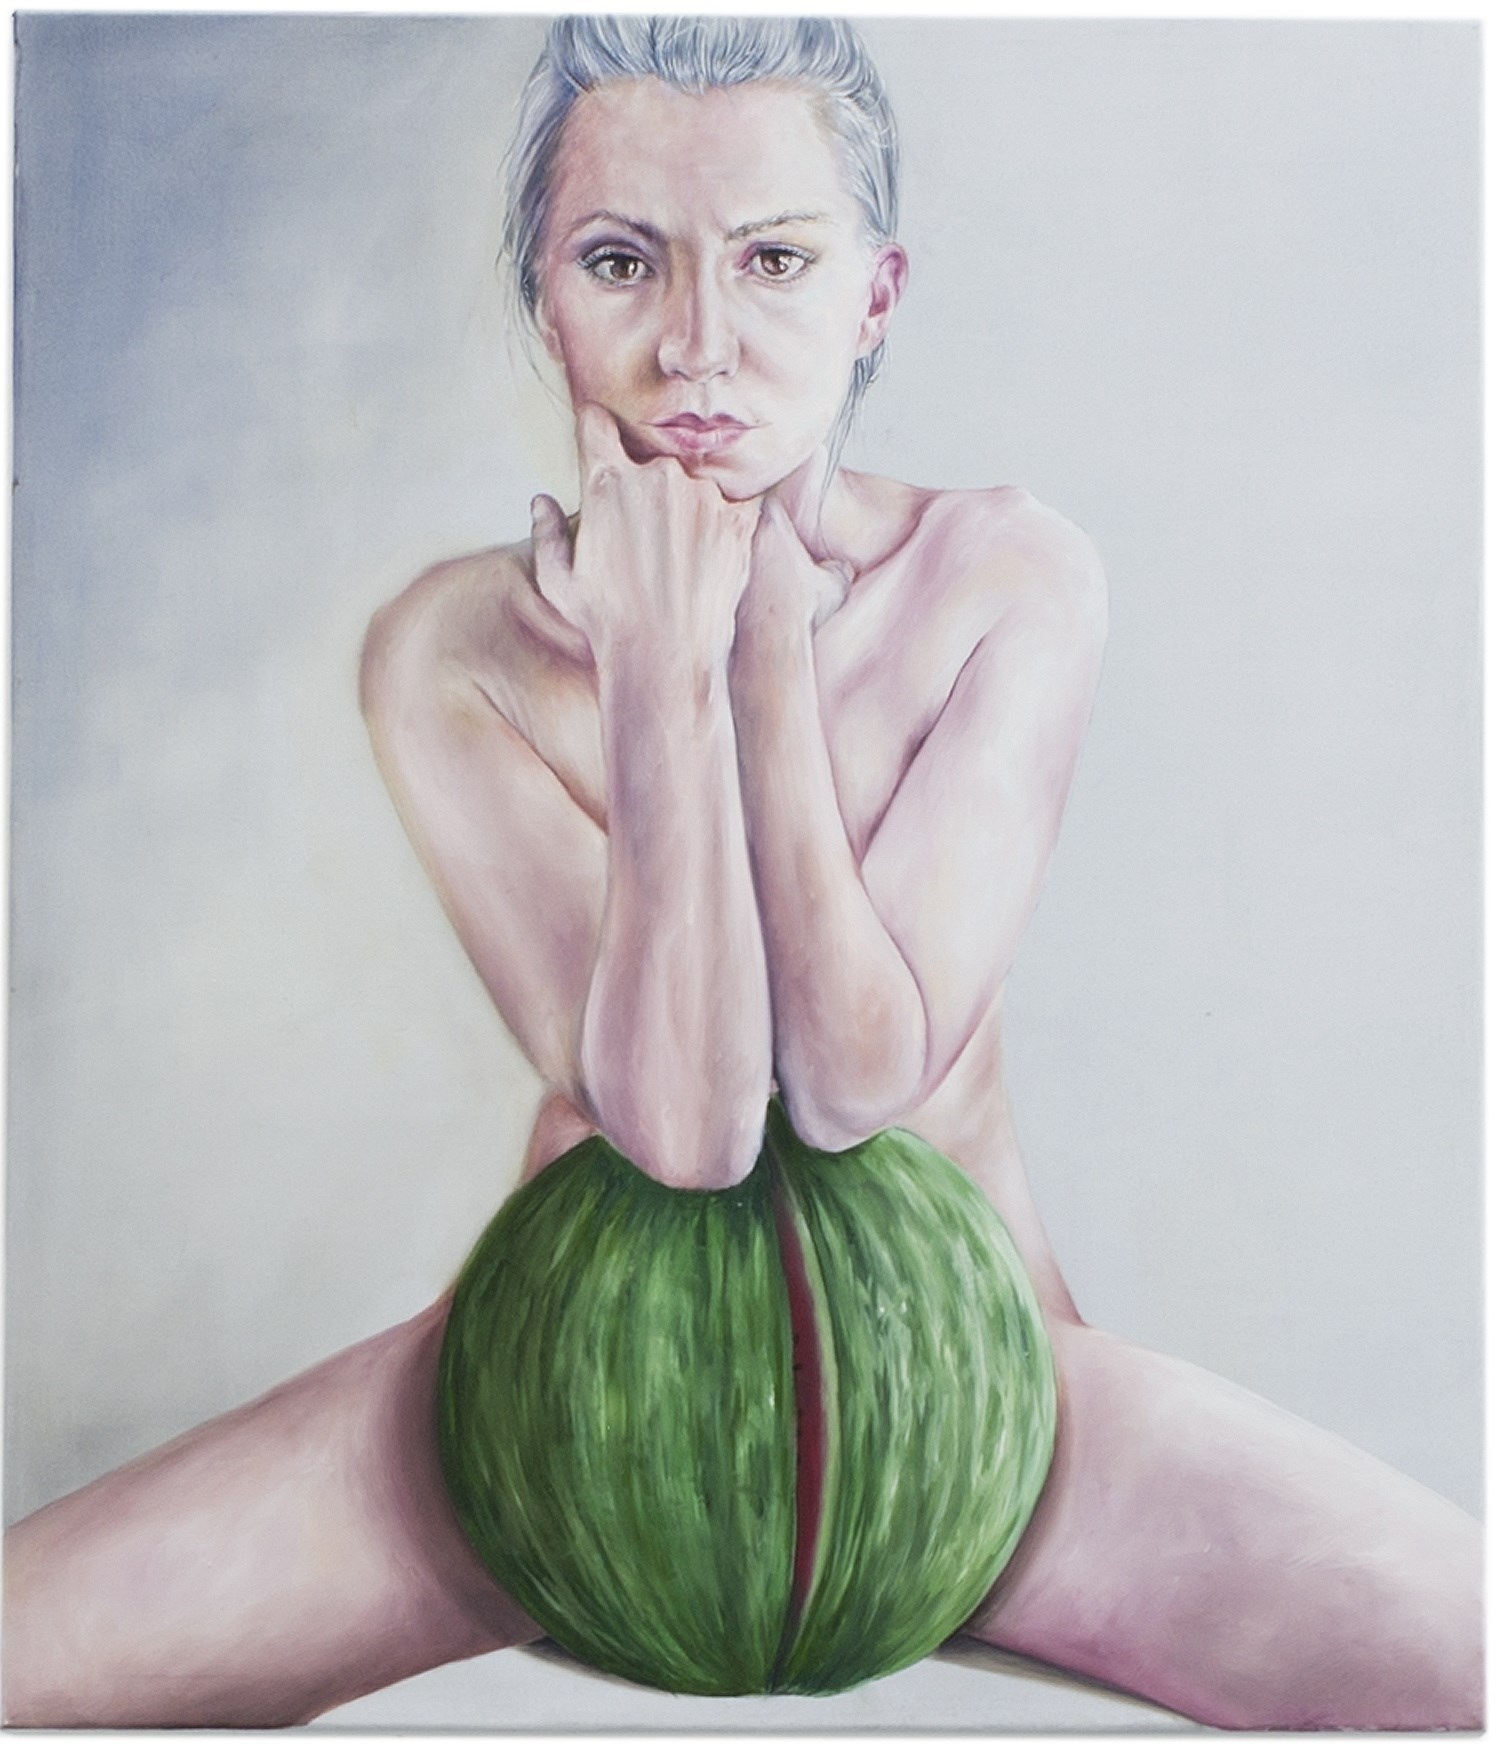 You're feminism bores me I prefer fruit, original Human Figure Oil Painting by Ana  Monteiro